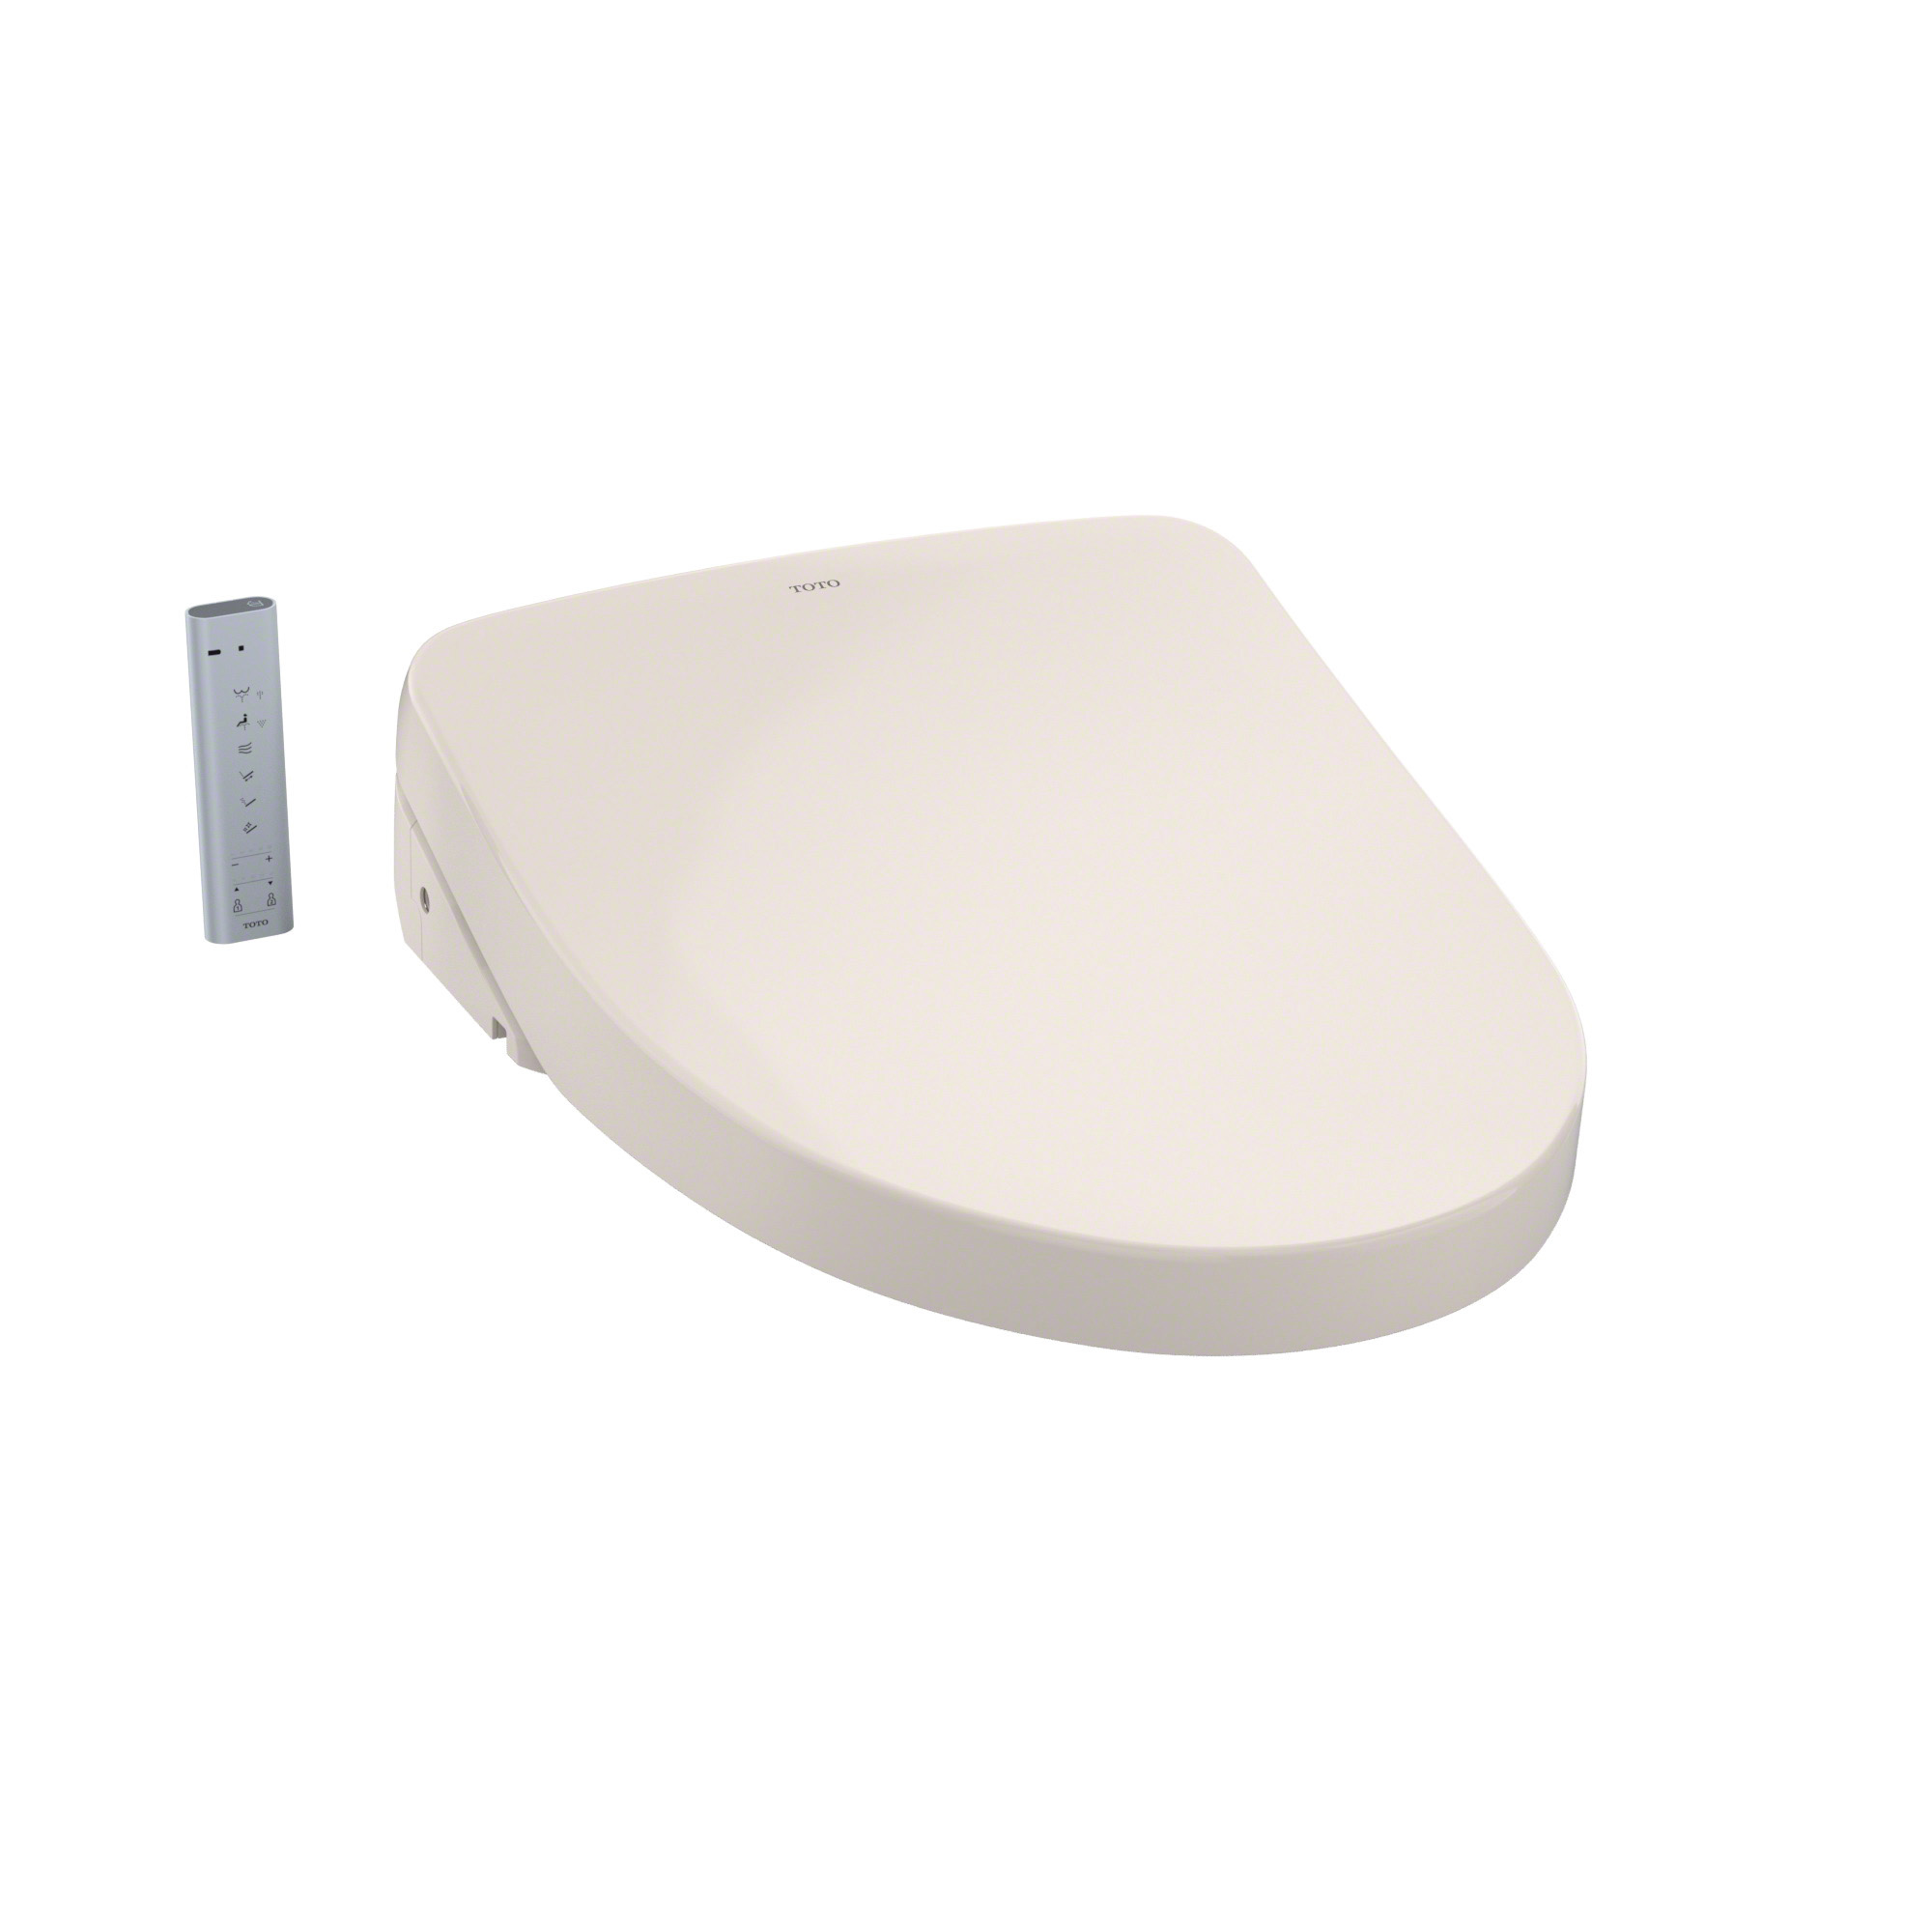 Toto® SW3056#12 Electronic Bidet Toilet Seat With ewater+® Technology, WASHLET® S550e, Elongated Front Bowl, Auto Open/Closed Front, Plastic, Sedona Beige, Import